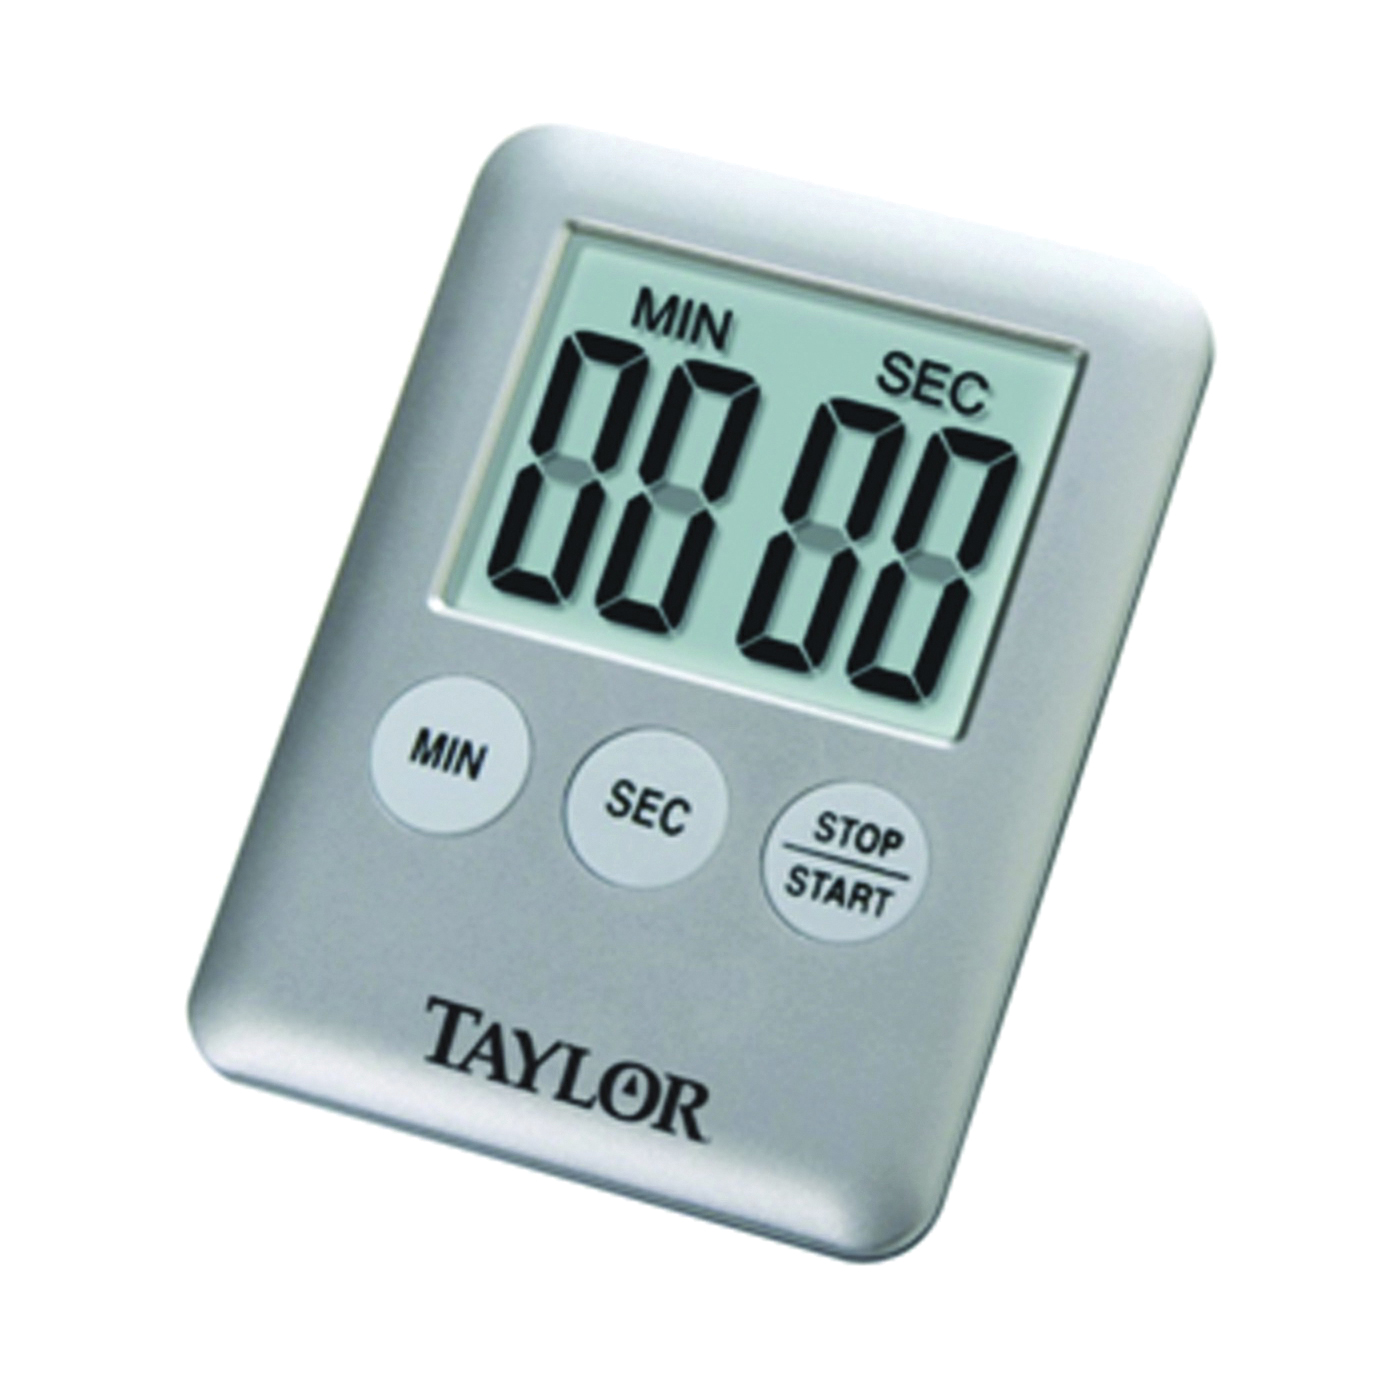 Picture of Taylor 5842N15 Timer, LCD Display, 0 min 0 sec to 99 min 59 sec, Gray